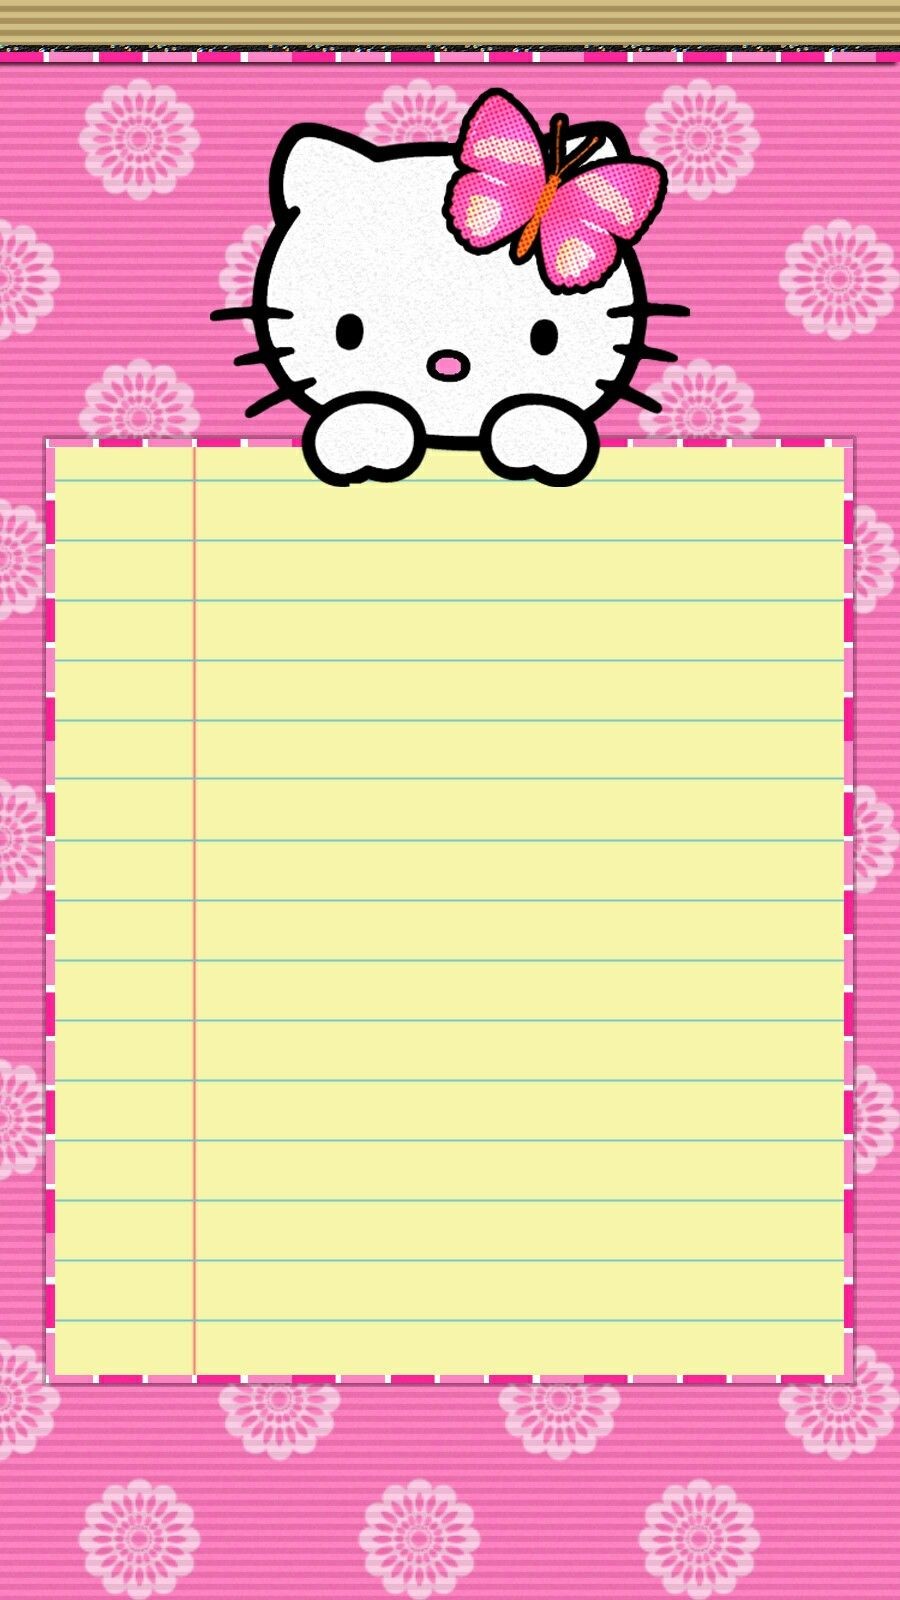 Simple Wallpaper Hello Kitty Iphone - 9609fb1fea6d6b139eefa98daef35fb6  You Should Have_266843.jpg